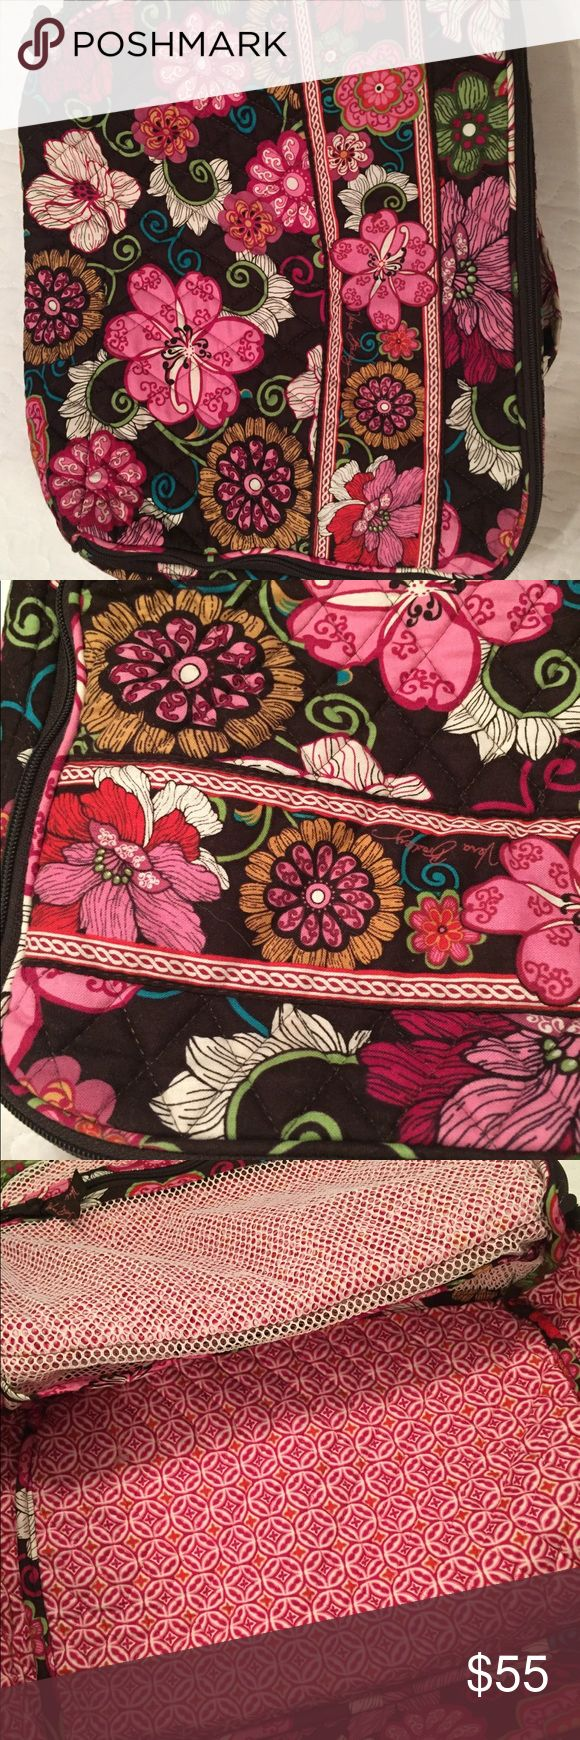 Vera Bradley Tote Bag Lightly used tote/small suitcase bag. Great for laptops or day trips! Bags